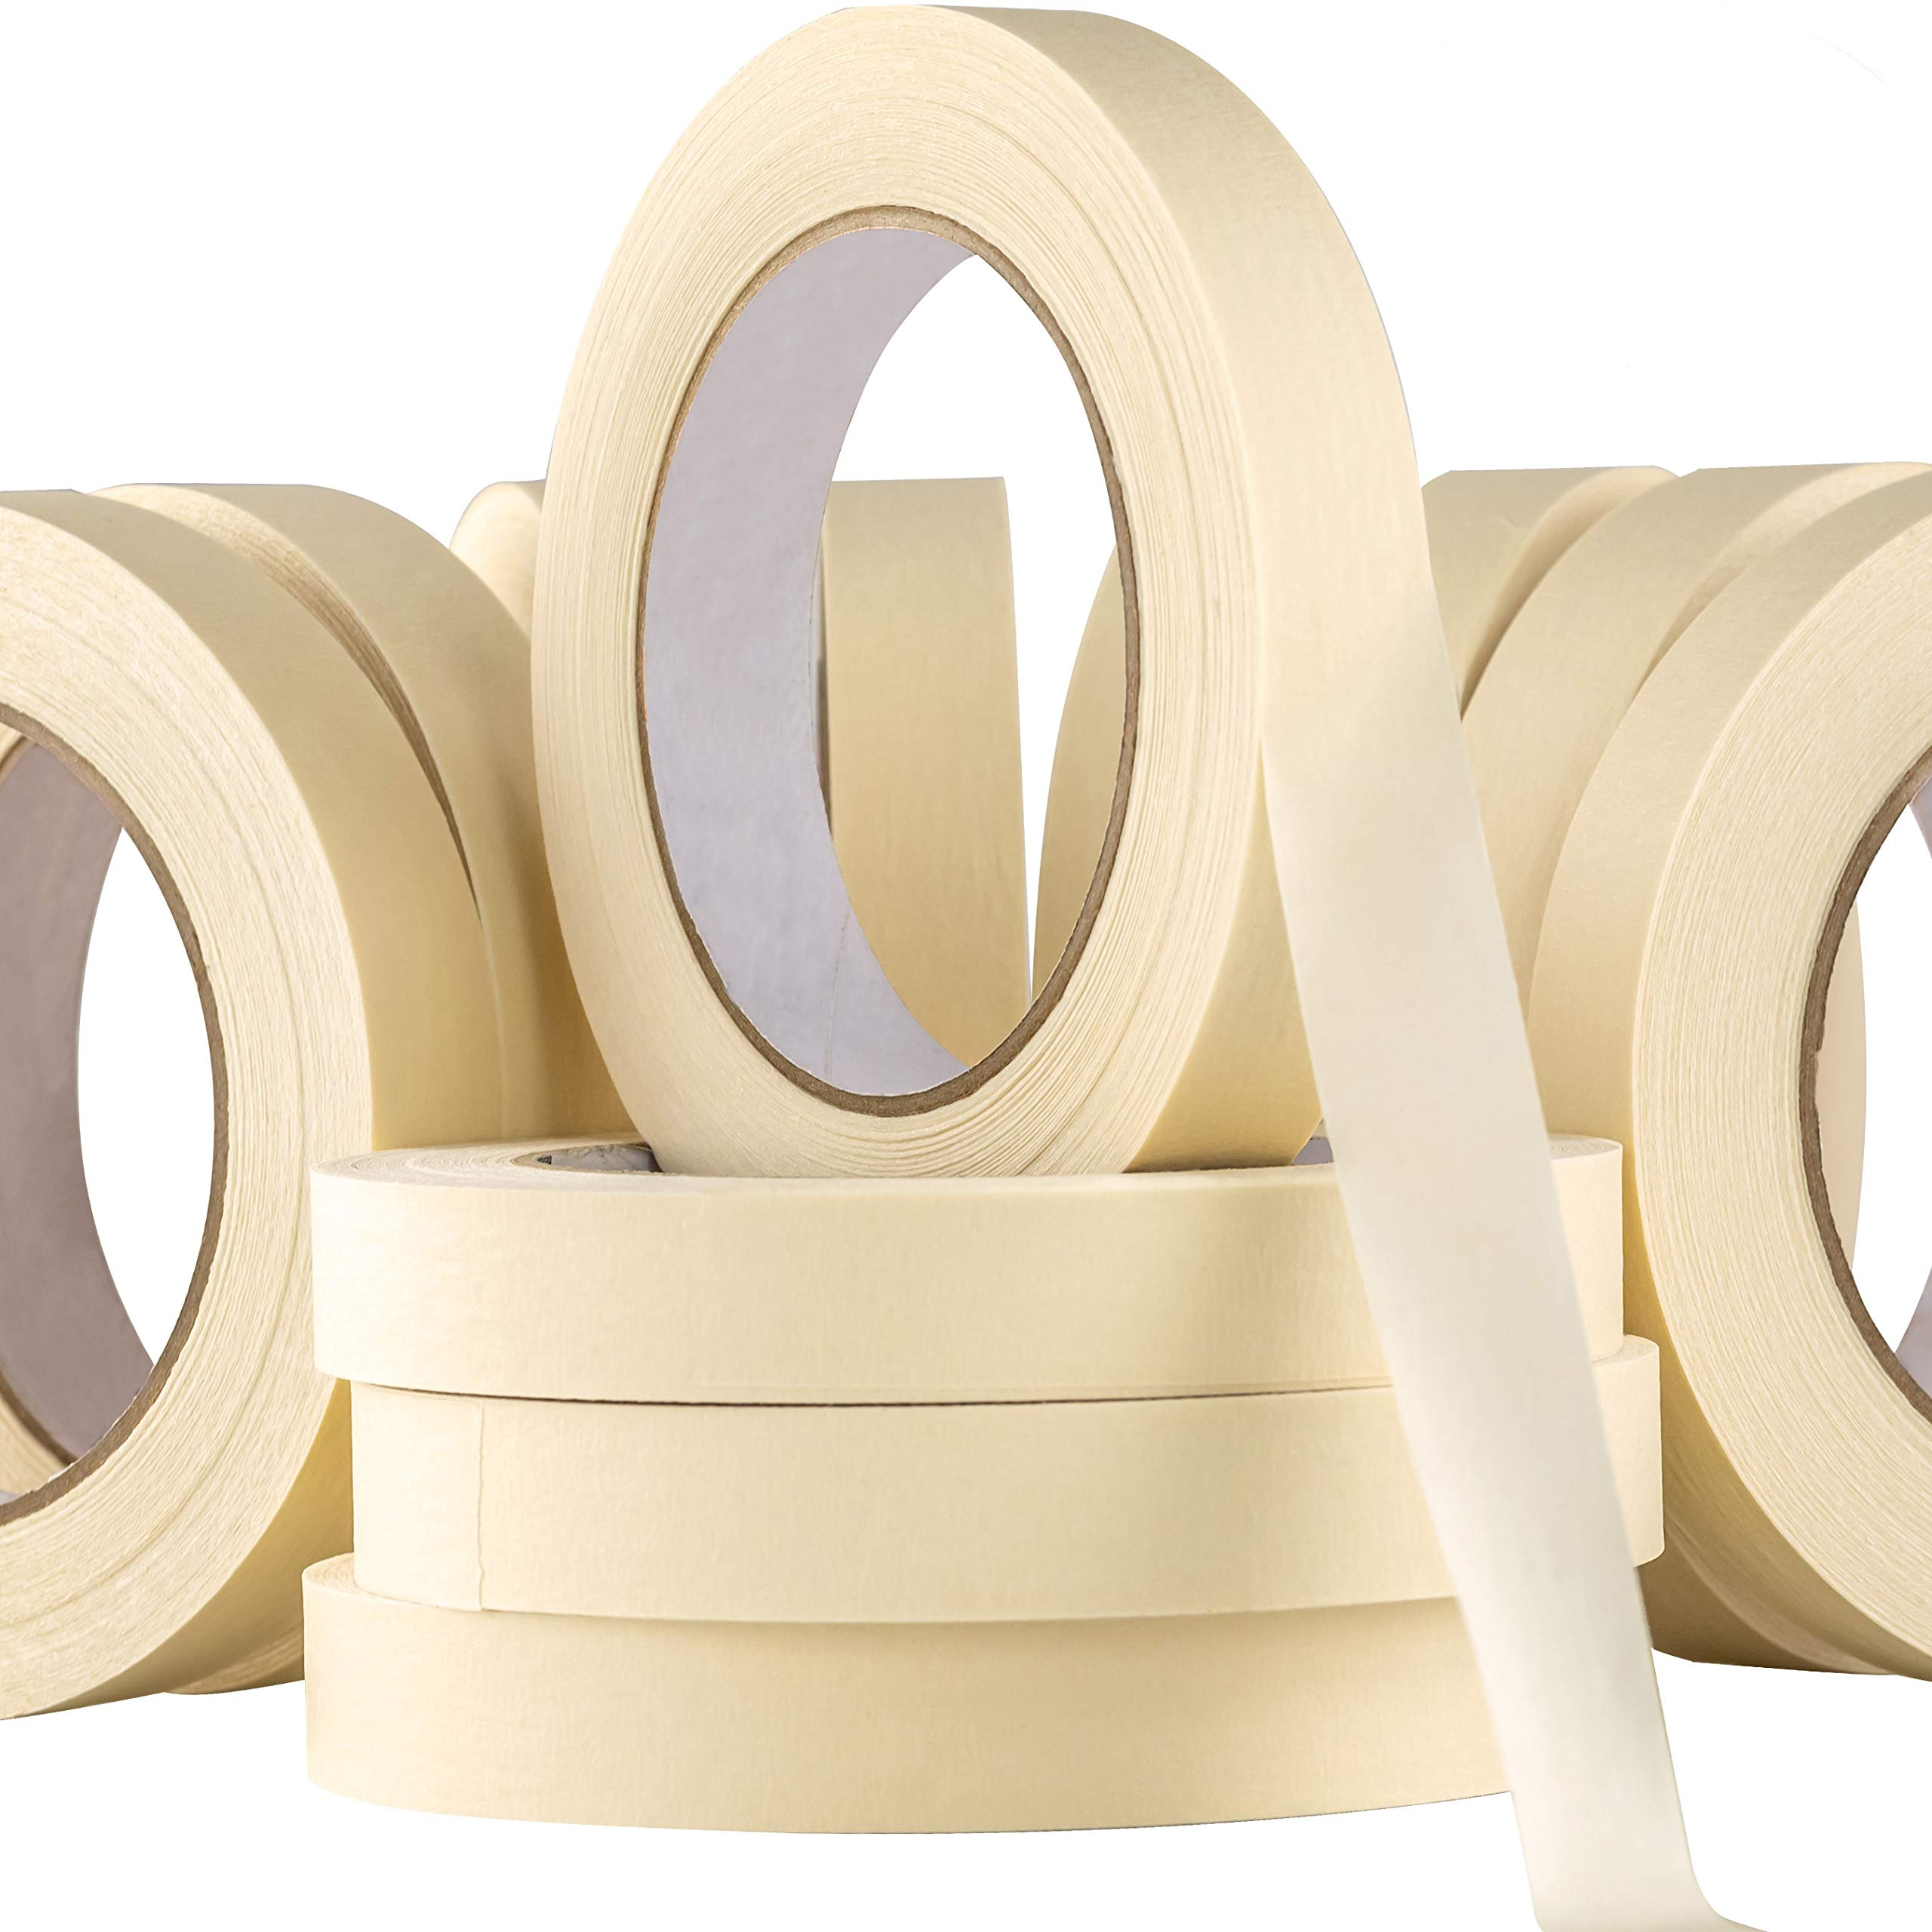 Nova Supply 3/4 in Pro-Grade Masking Tape. Single - 36 Rolls = Yards of Multi-Use, Easy Tear Tape. Great for Labeling, Painting, Packing and More. Adhesive Leaves No Residue. (36)